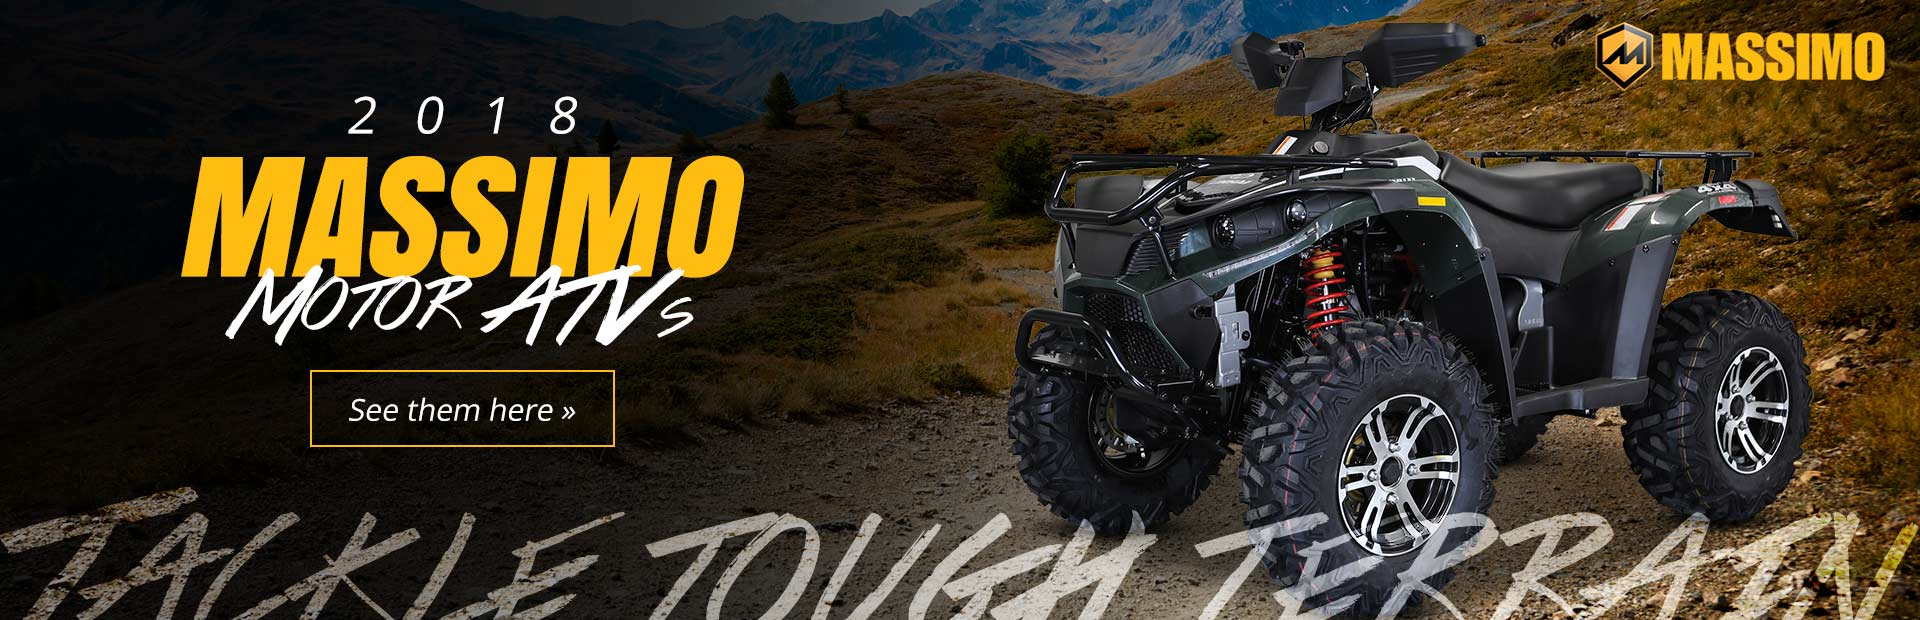 2018 Massimo Motor ATVs: Click here to view the models.